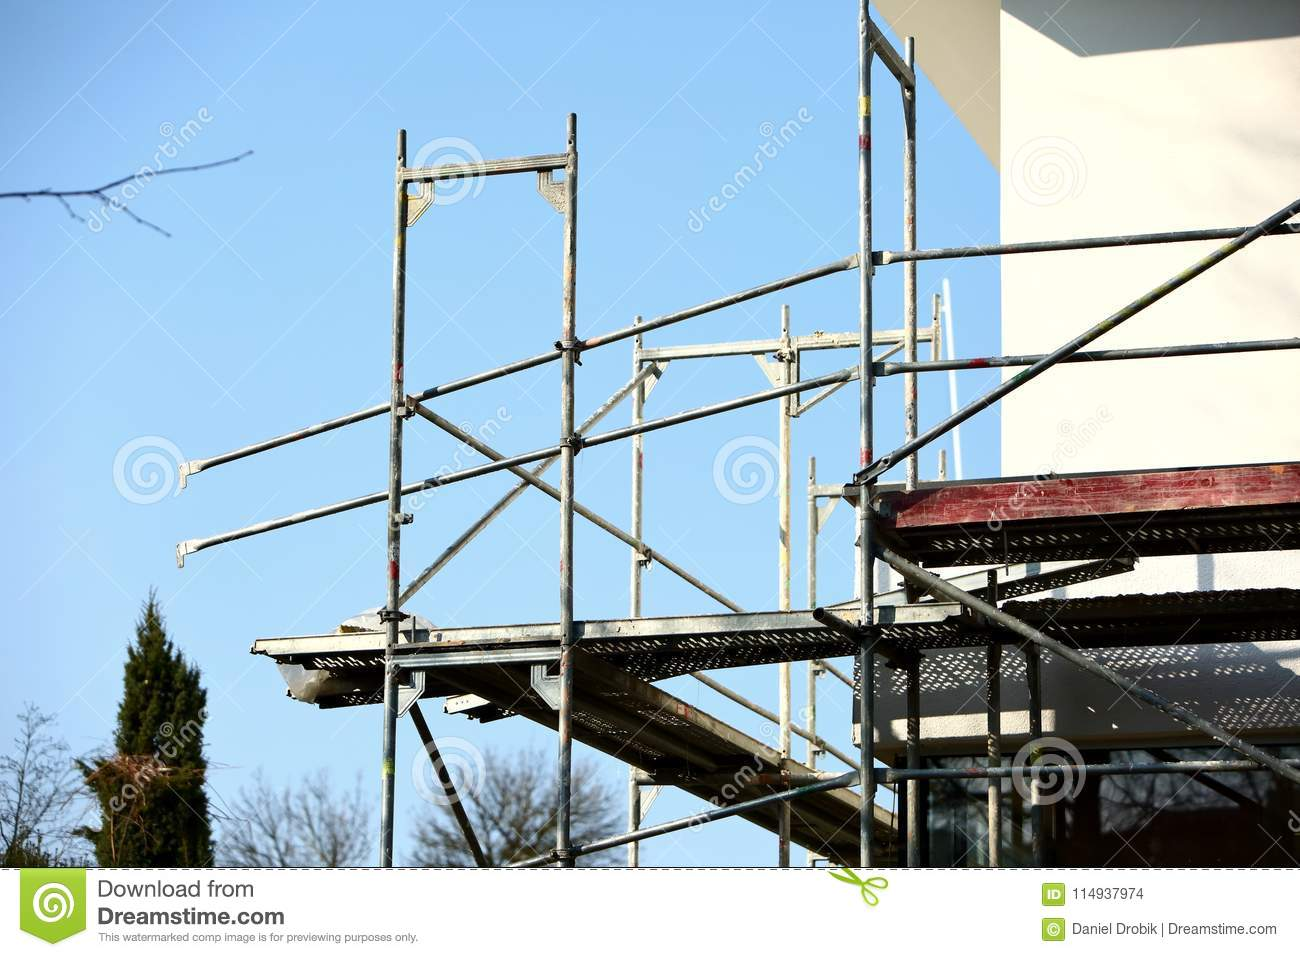 Steel scaffolding used for façade renovation works.